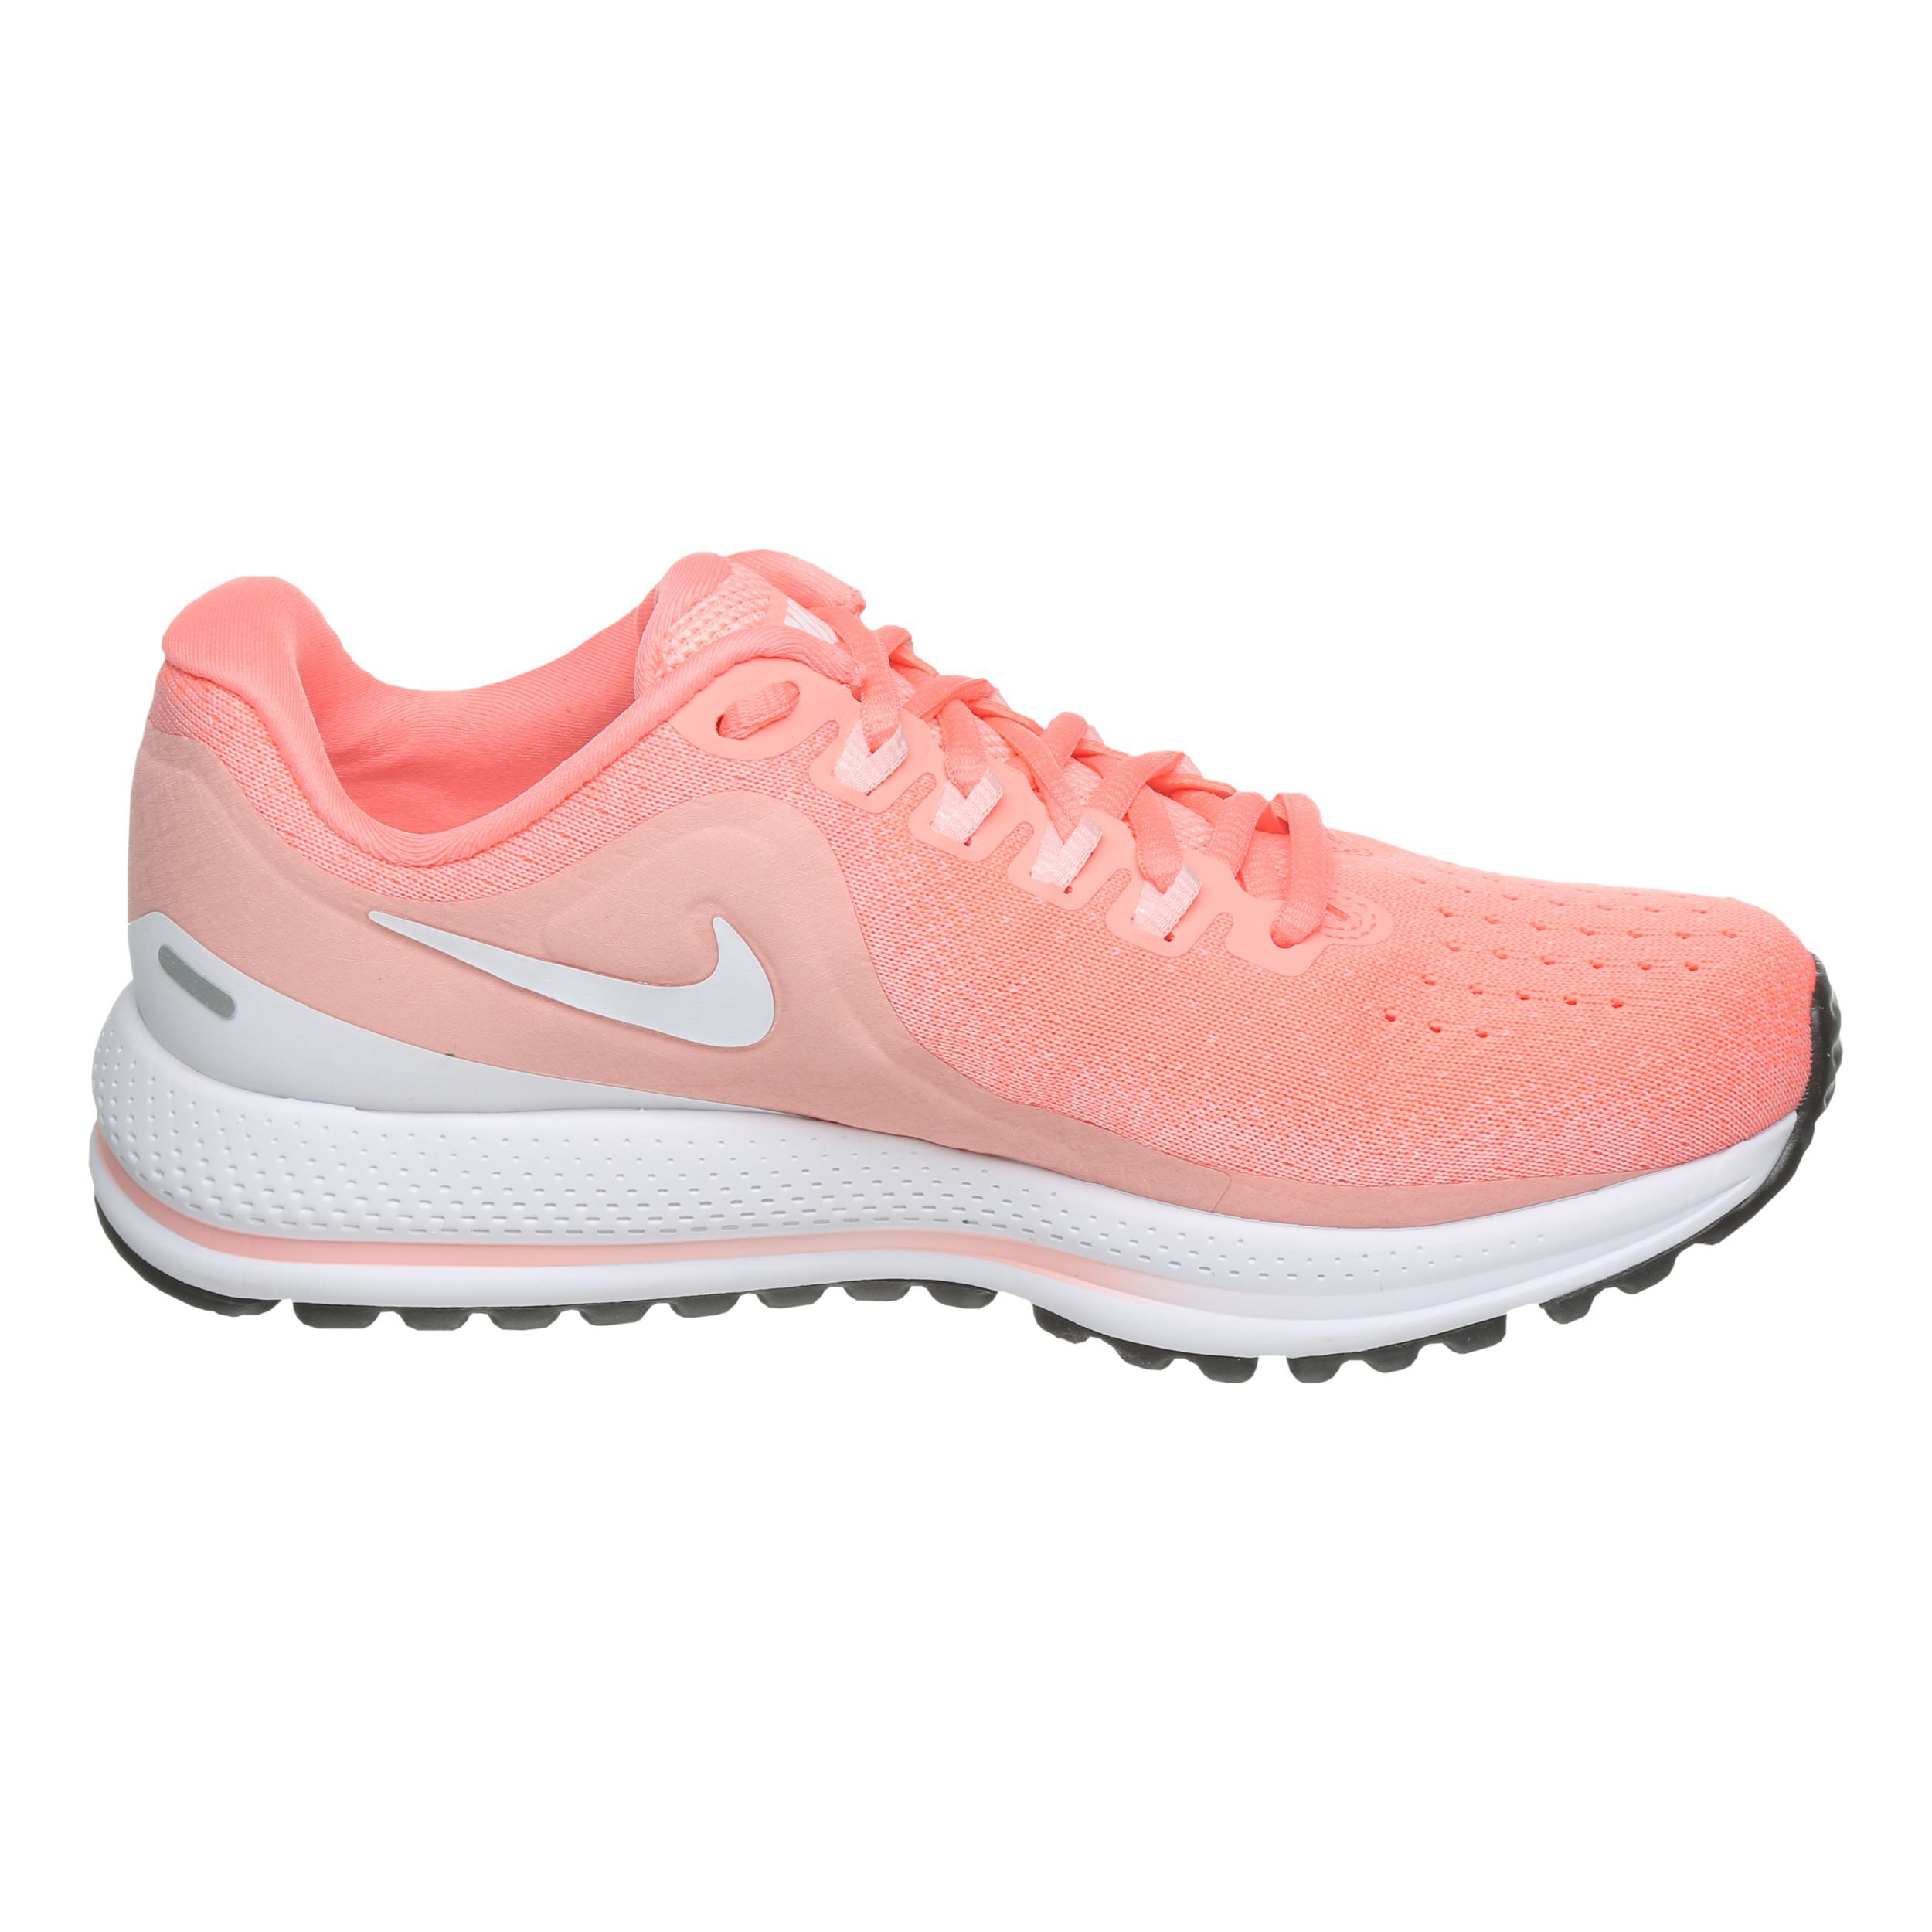 Details about Women's Nike Air Zoom Vomero 10 Running Shoes Size 8